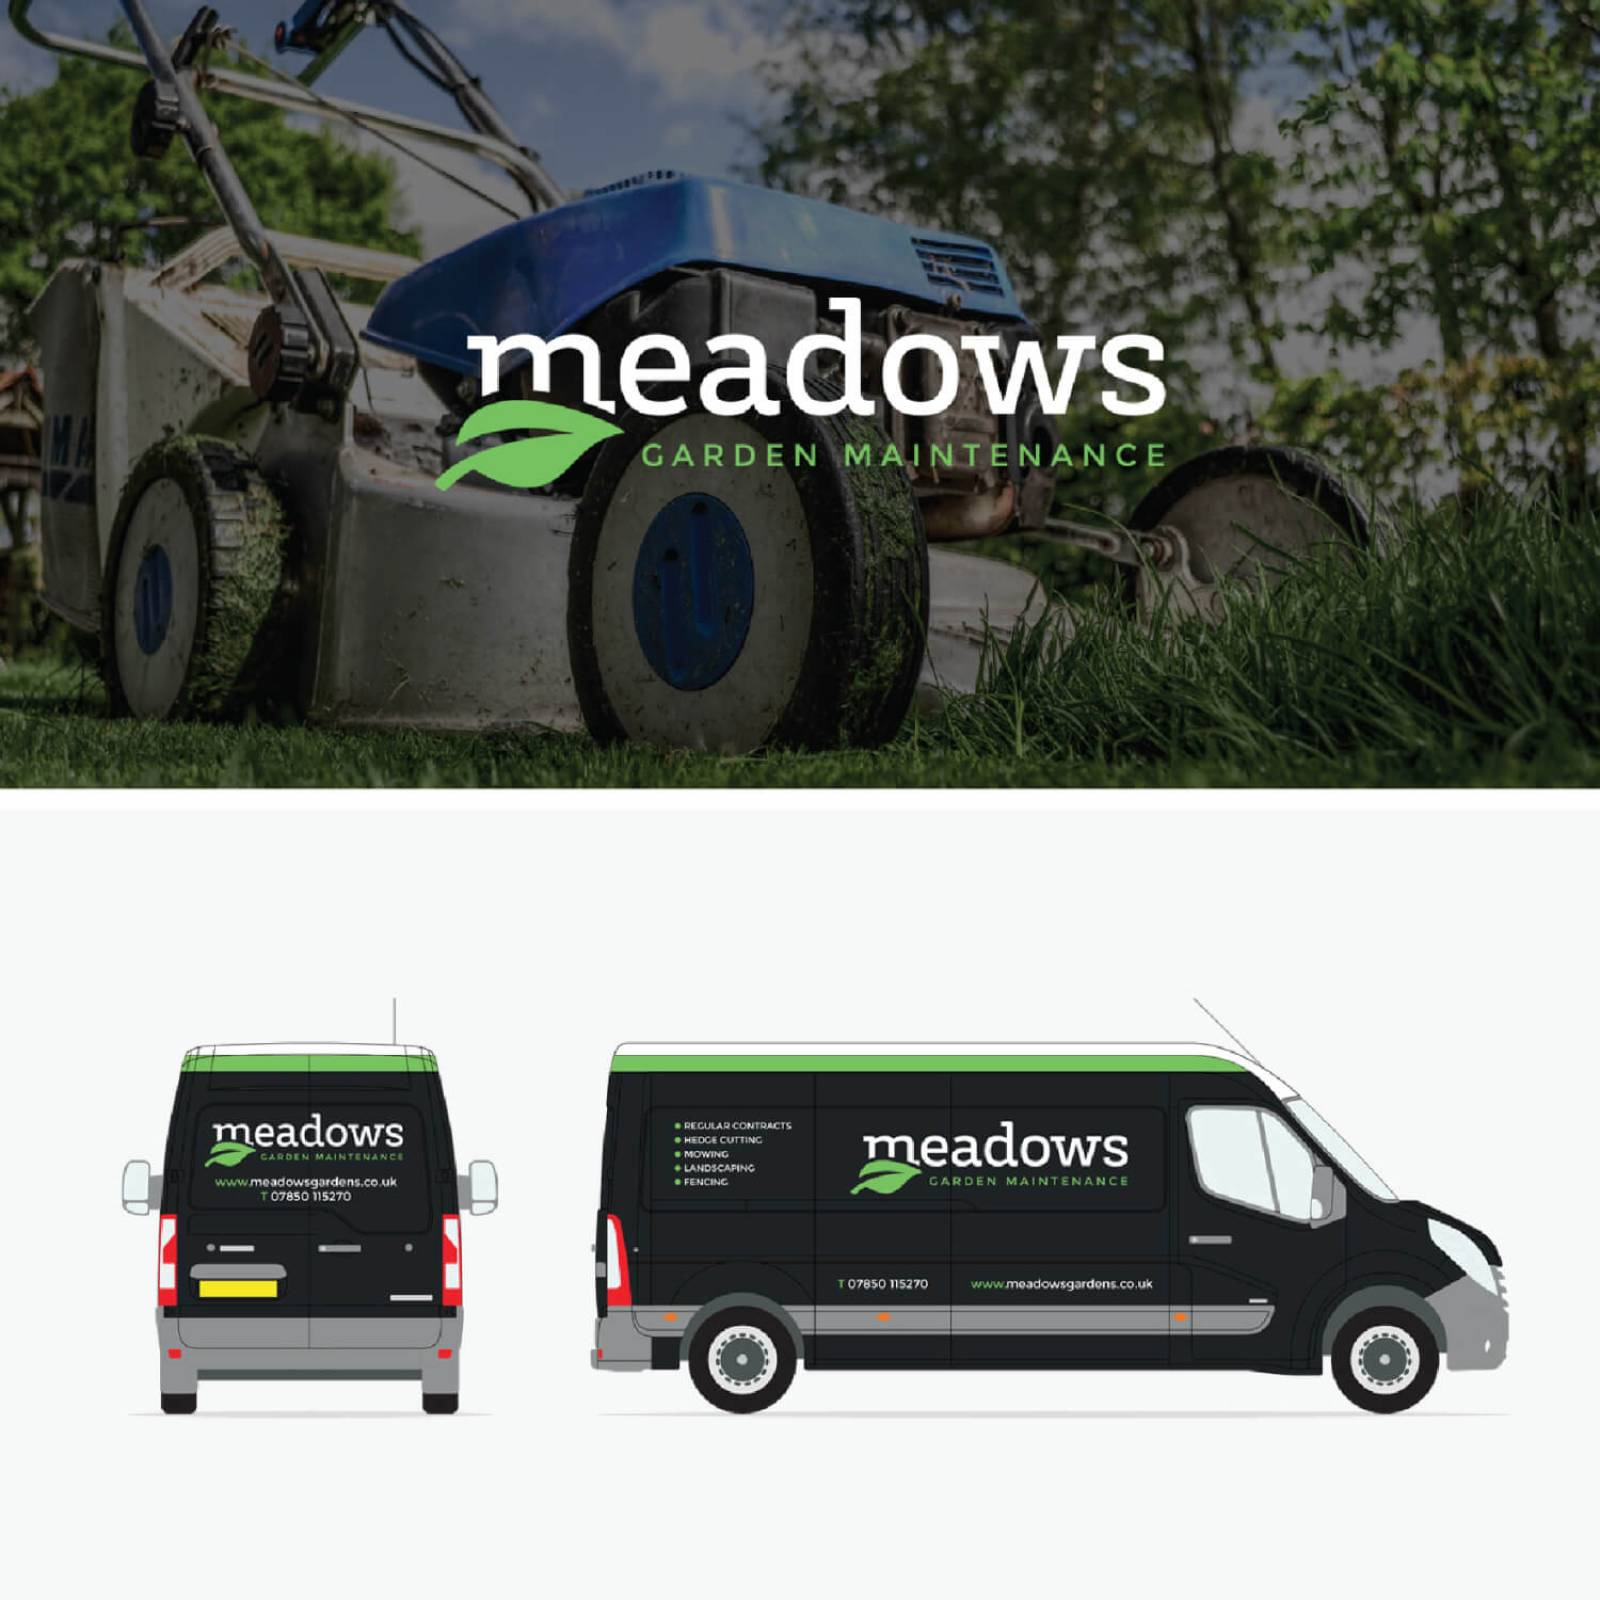 Vehicle-2-Meadows-Canterbury-Graphic-Design.jpg